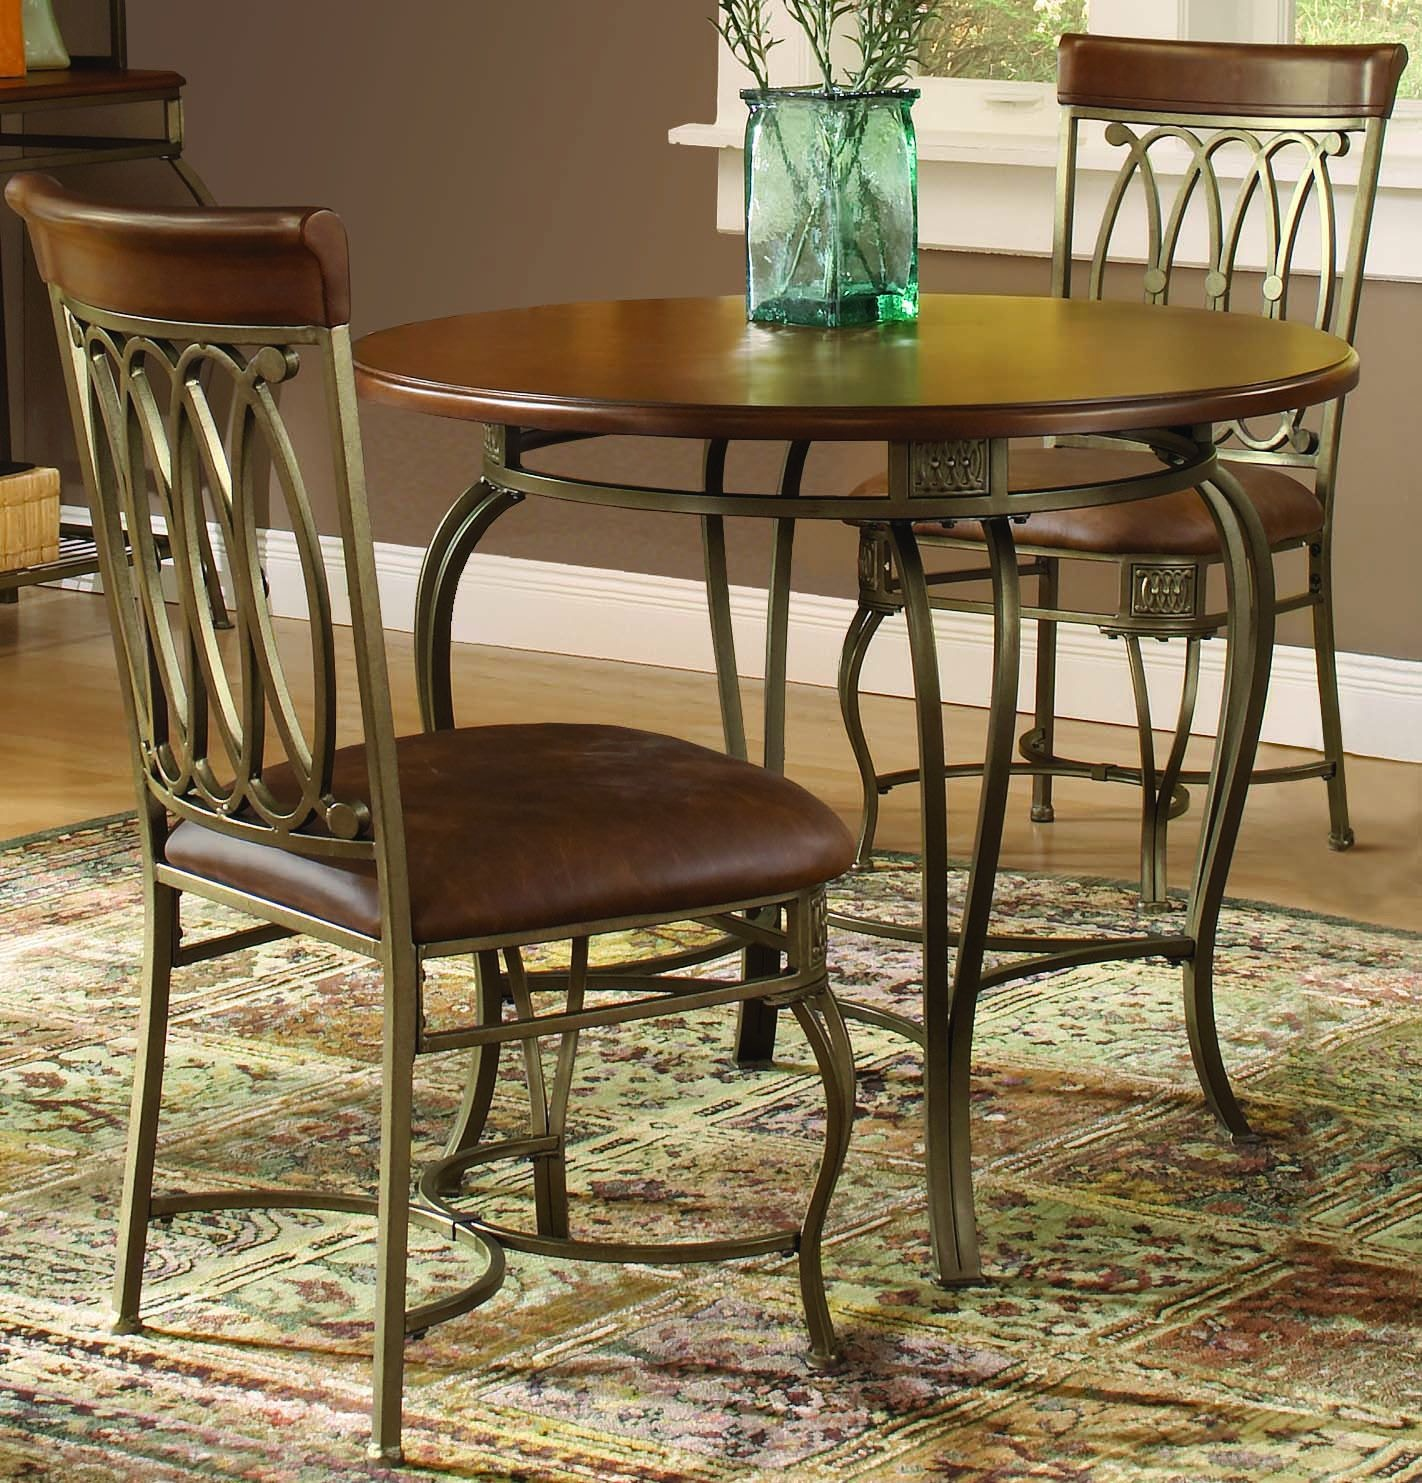 41541DTB36C3. Montello 3 Piece Dining Set